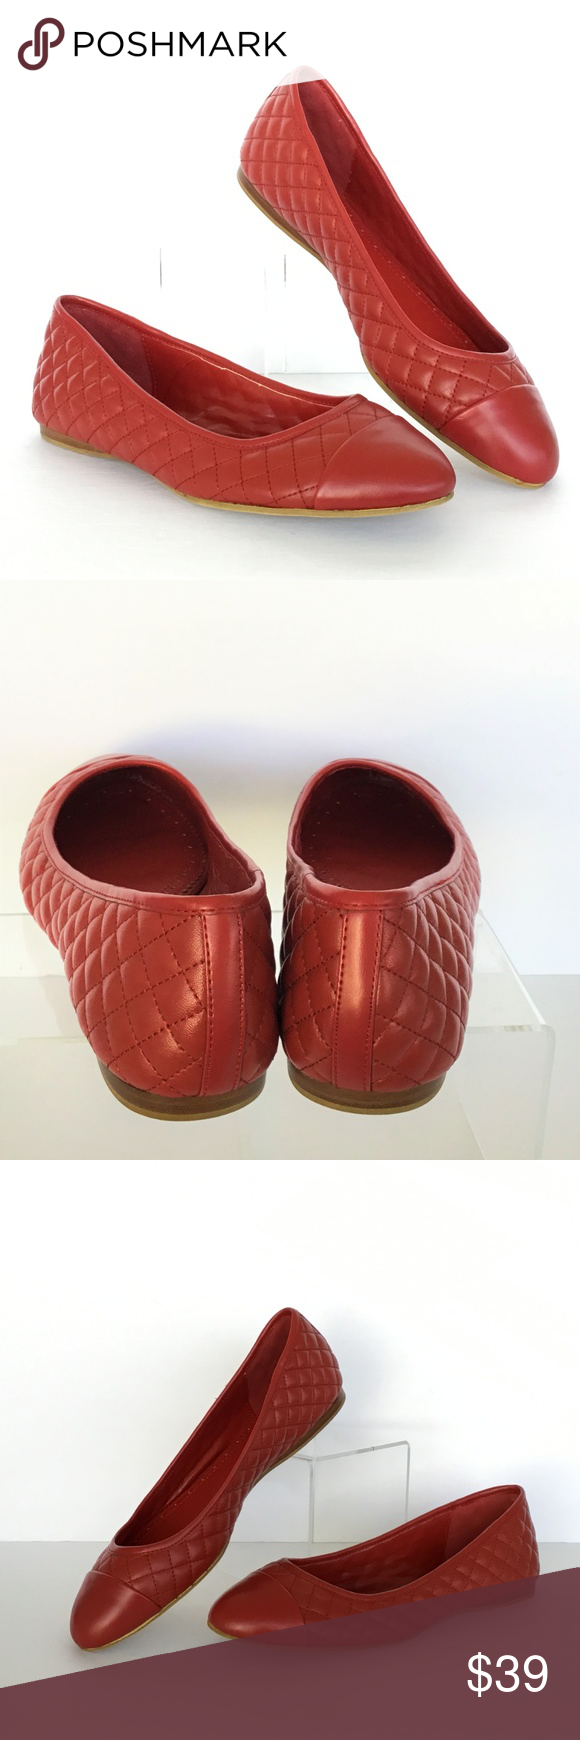 0b880193f5e Brooks Brothers 346 Ballet Flat Quilt Red Leather Brooks Brothers 346  Ballet Flat Womens Size 8.5 M Shoes Quilted Red Leather New